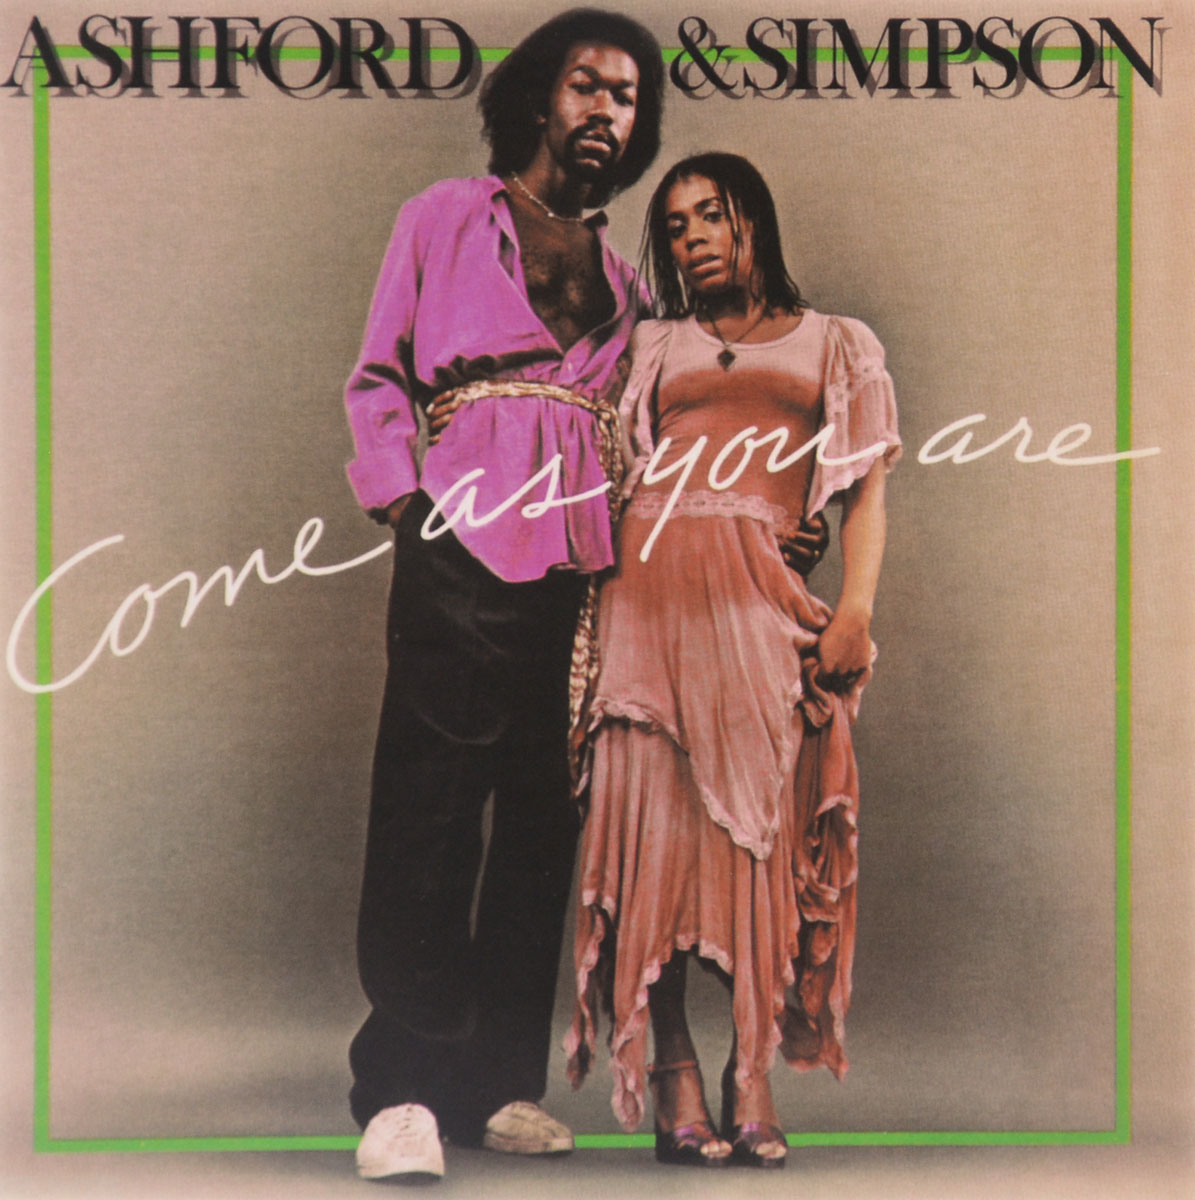 Ashford & Simpson. Come As You Are